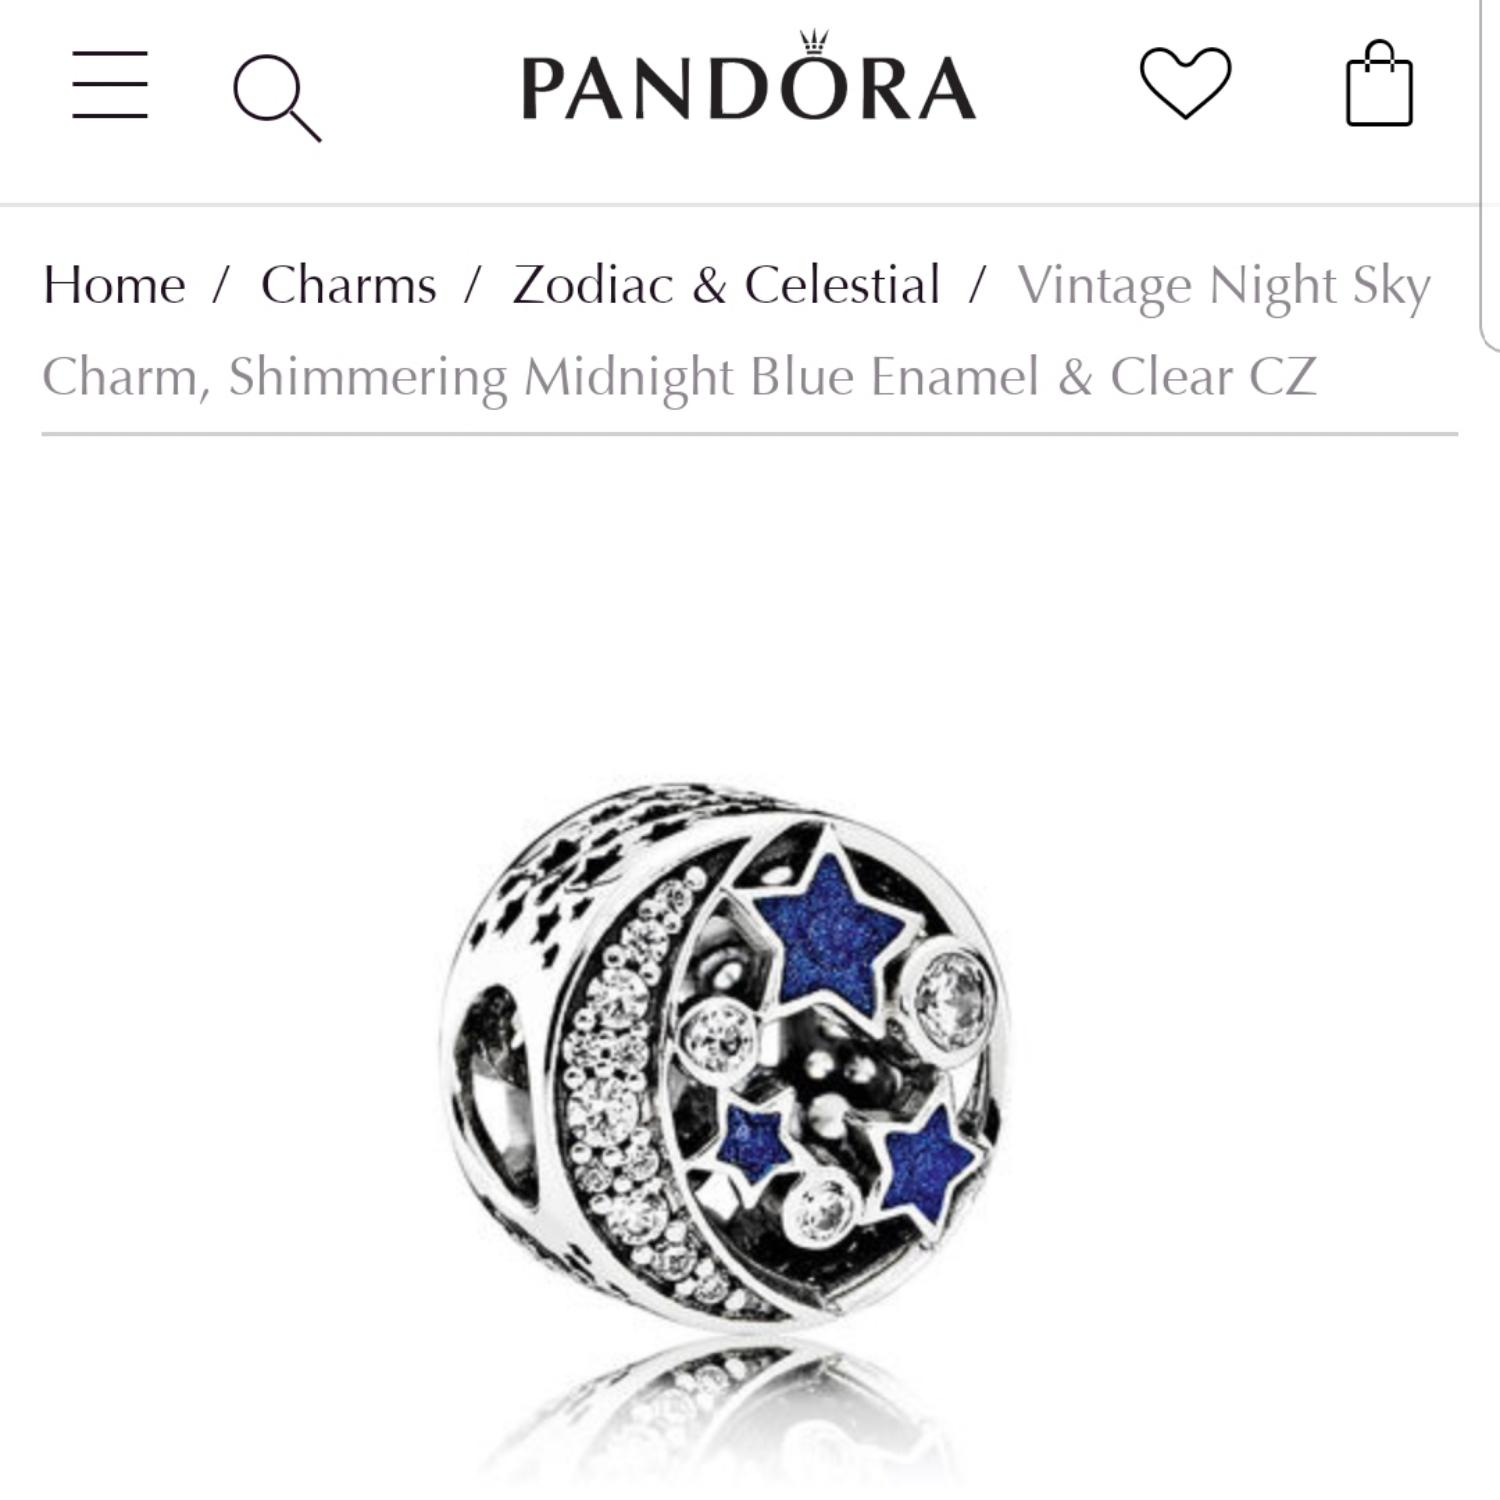 34b48d146 ... shimmering midnight blue enamel clear cz 74d48 9dcd8 good pandora  pandora vintage night sky charm.